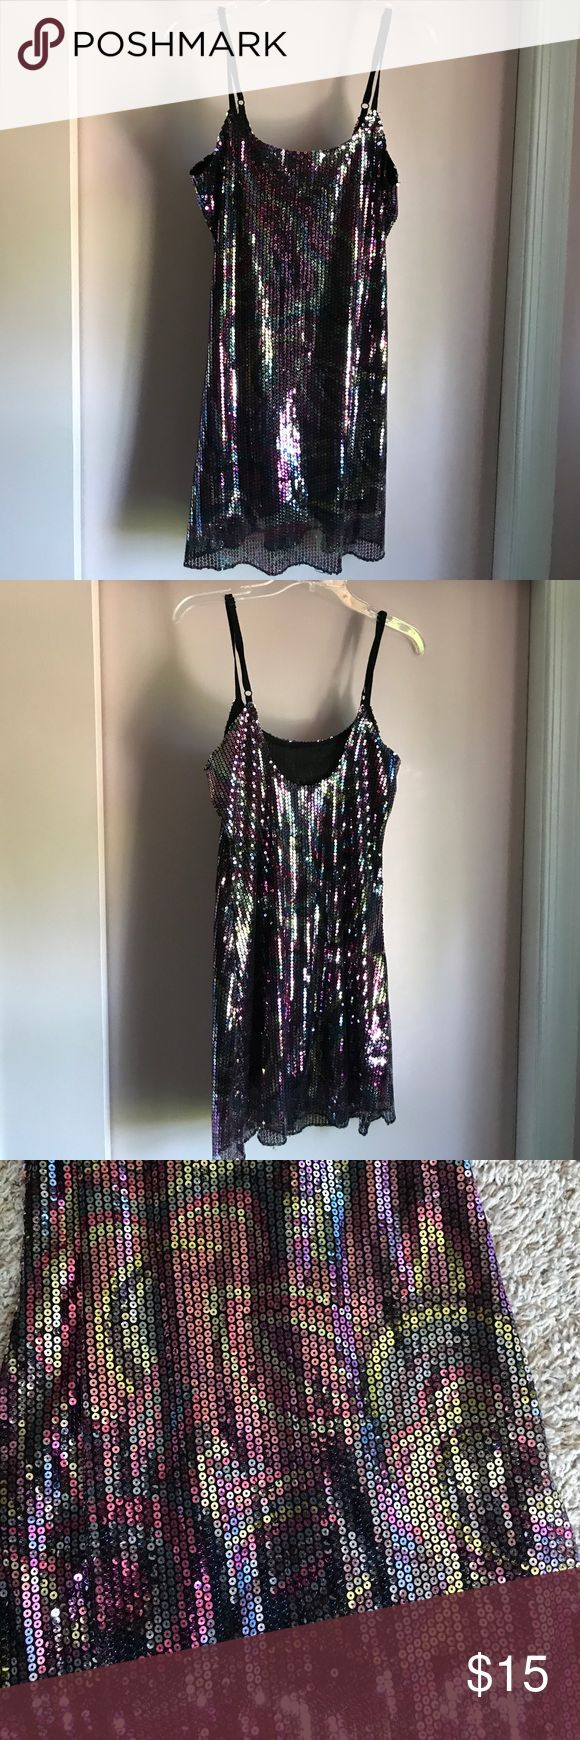 Multi colored sequenced tunic Lightly worn. No snags or tears. Very fun for New Years or a party. Can be worn as a mini dress depending on individuals height or worn with black leggings as a tunic. Wet Seal Dresses Mini